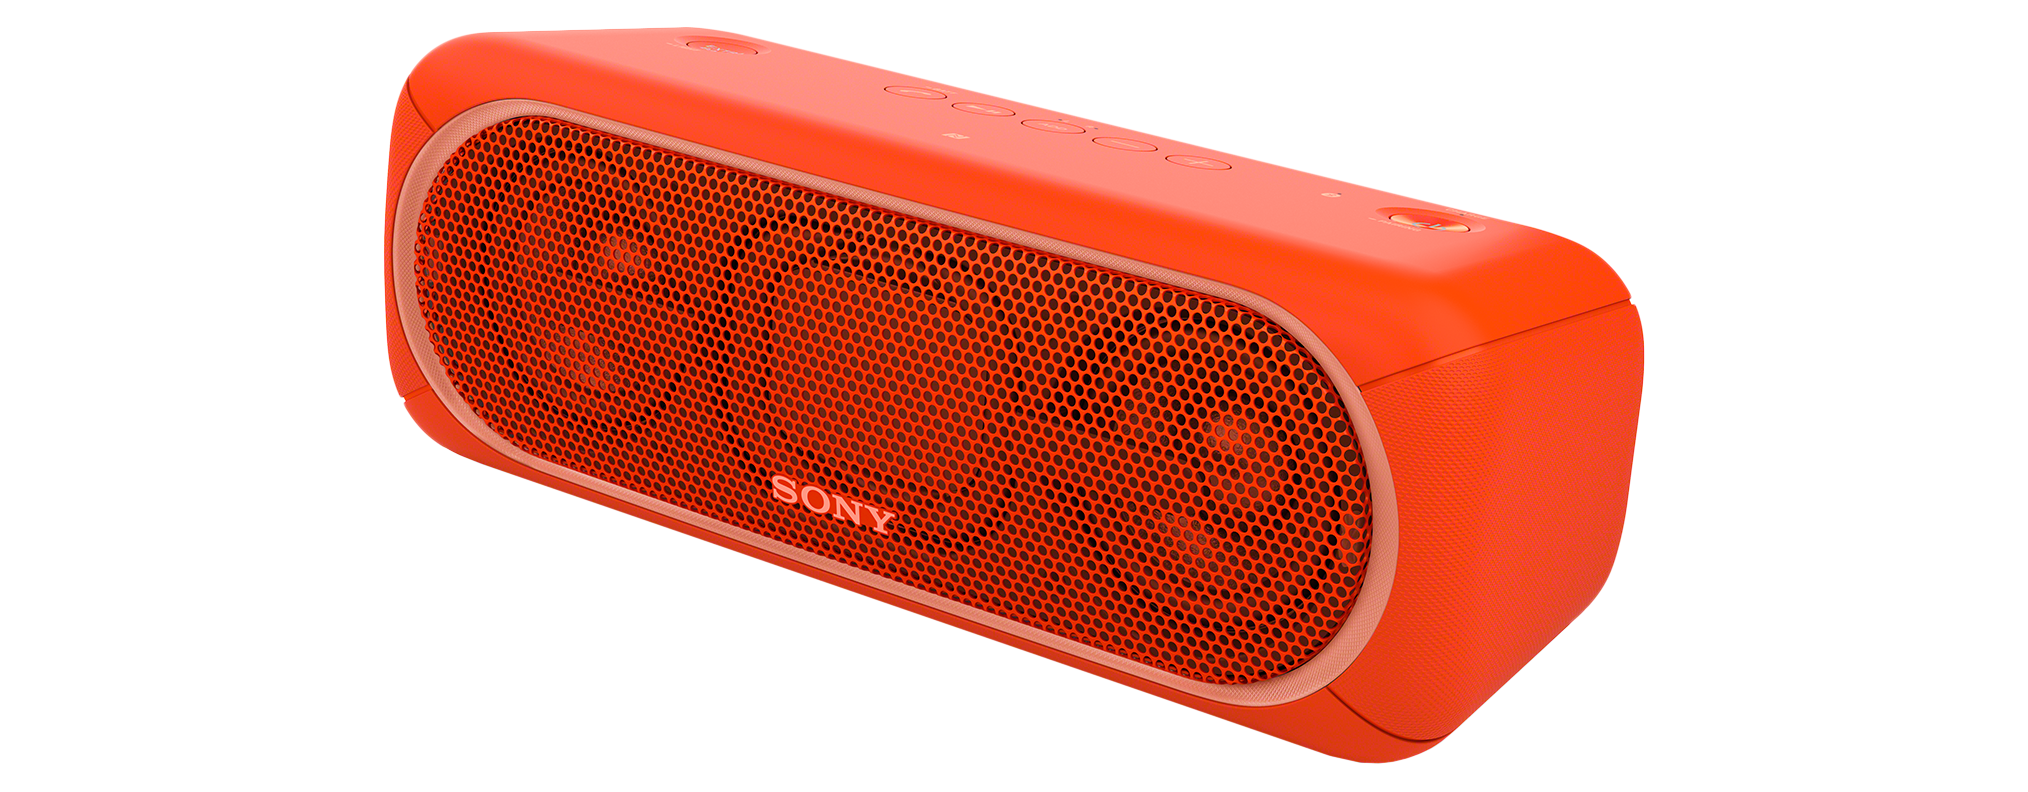 Колонка Sony SRS-XB40 колонка портативная sony srs xb40 black